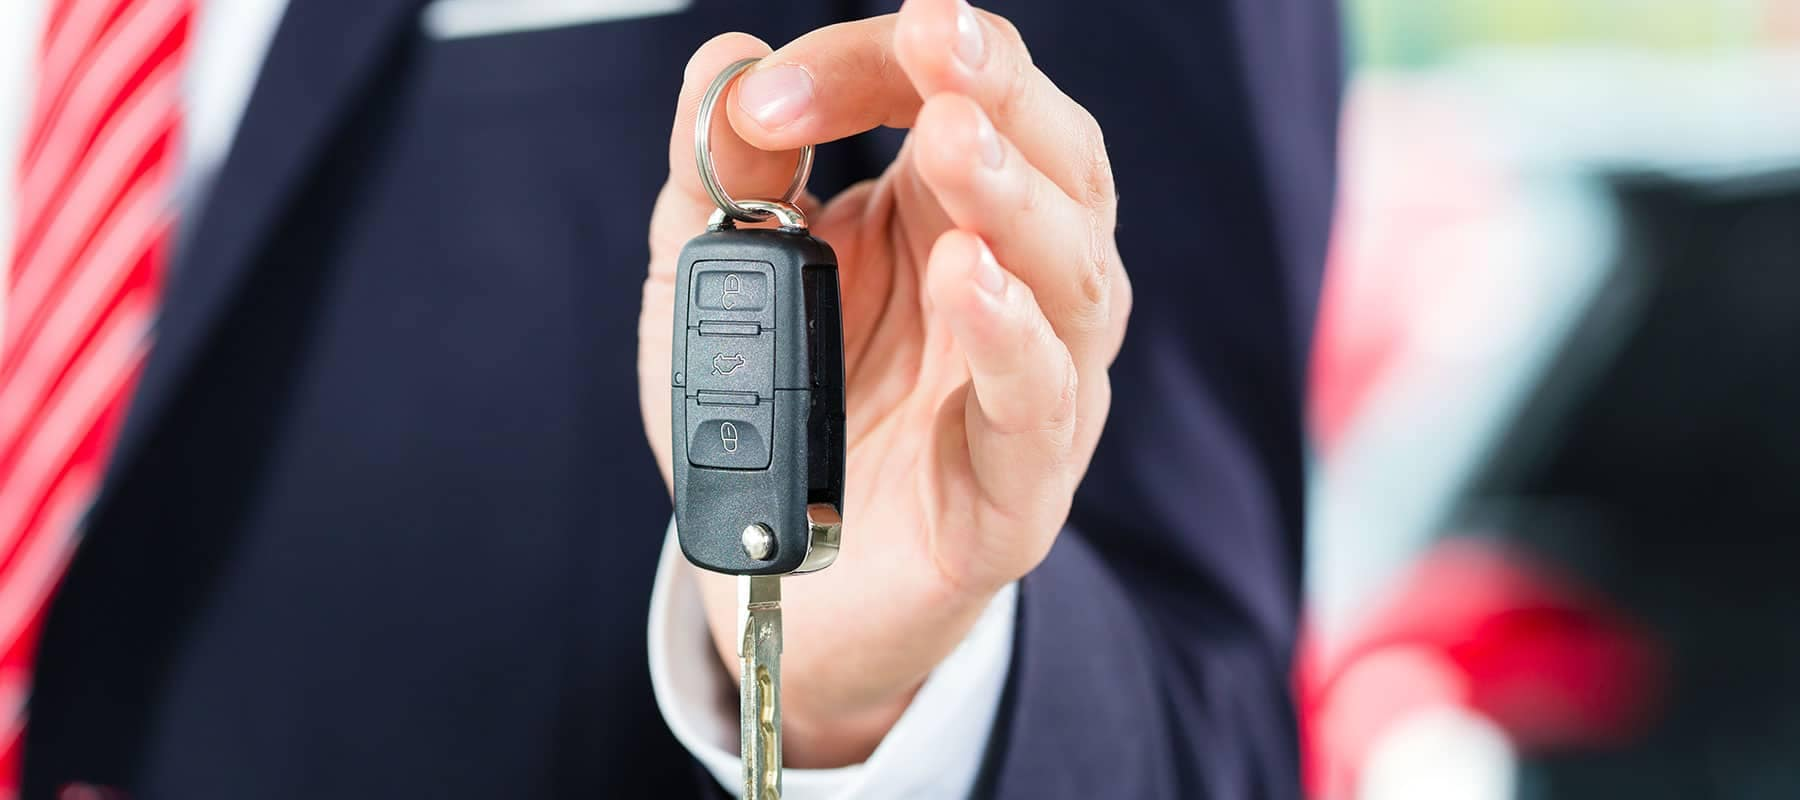 Person in Suit Holding Car Keys